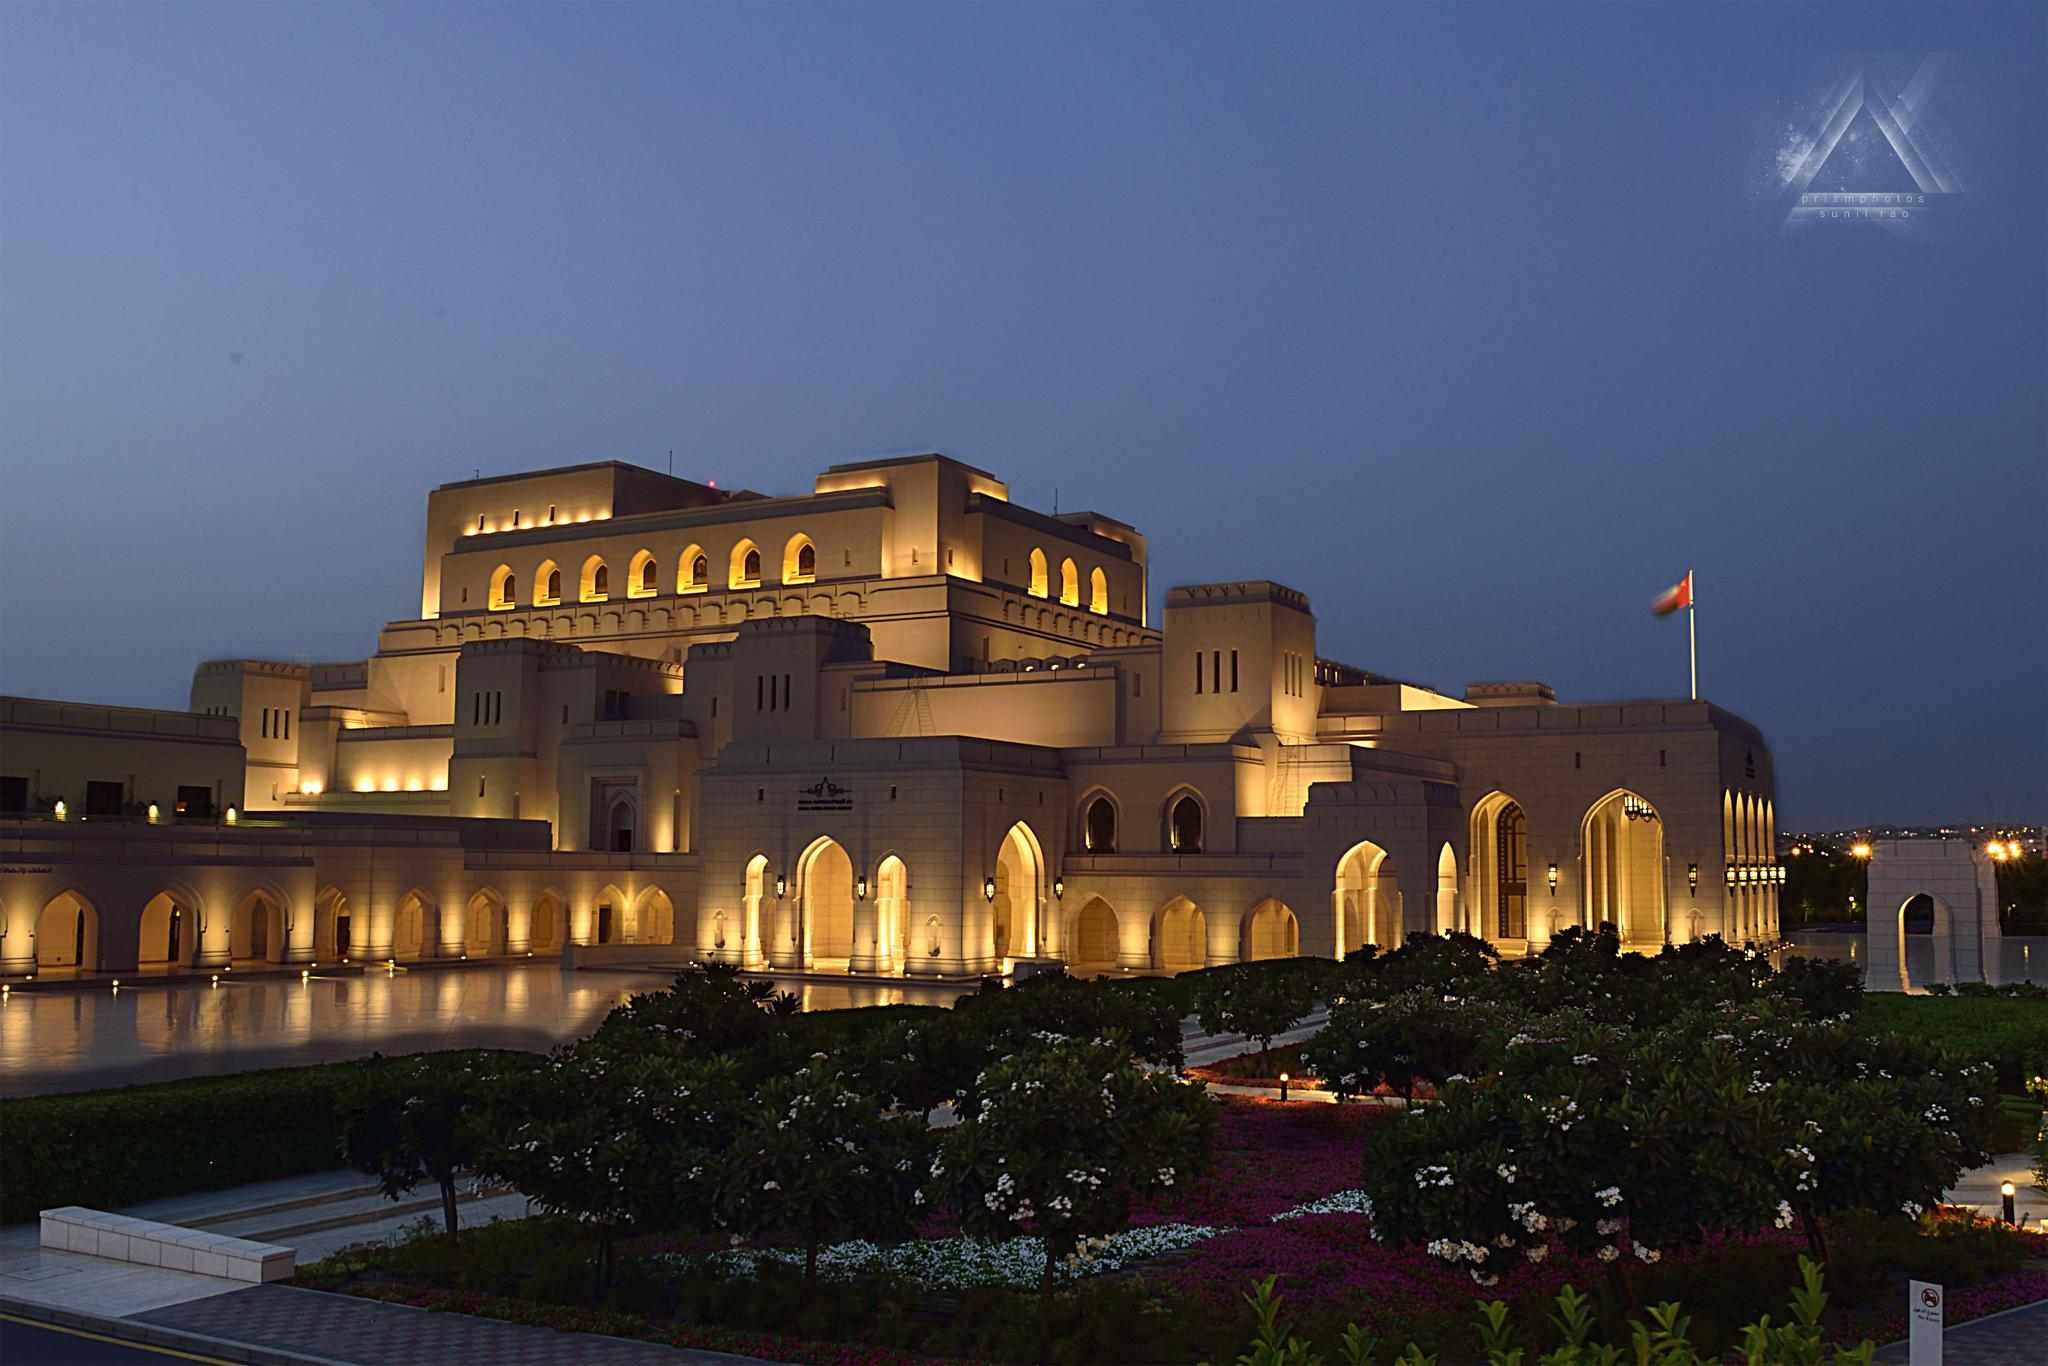 ROYAL OPERA HOUSE - MUSCAT by prismphotos - sunil rao